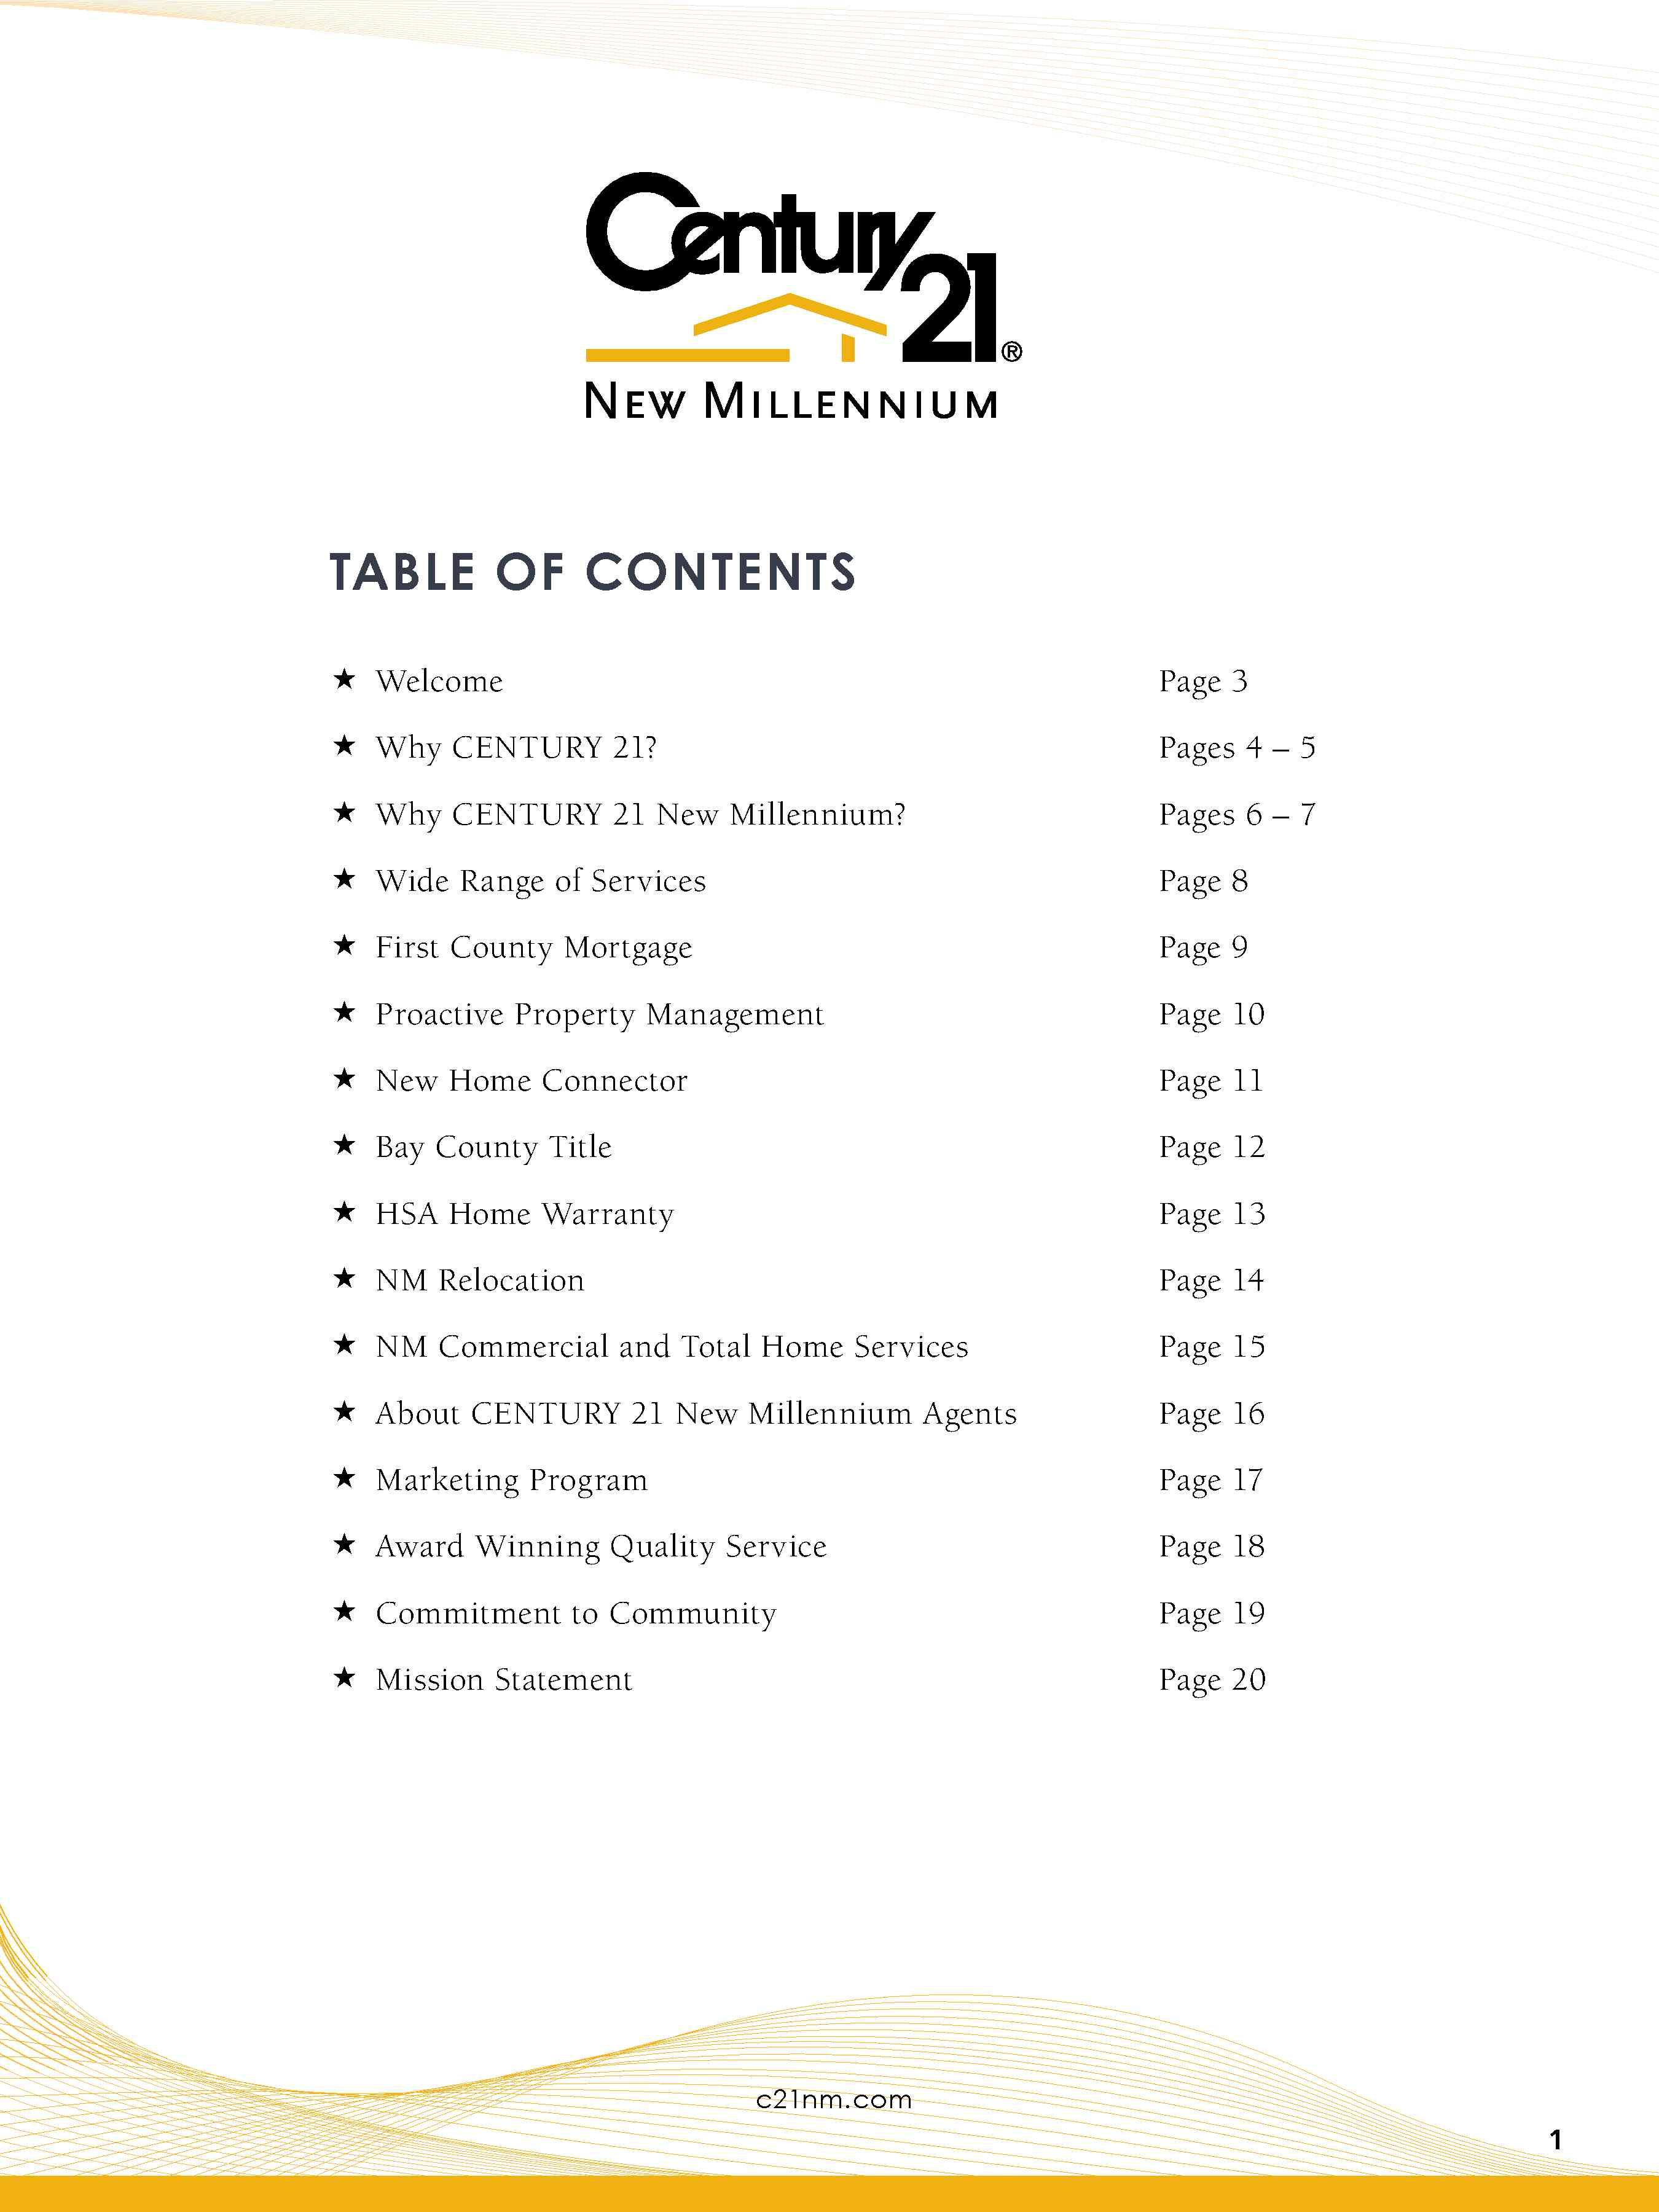 Listing Presentation Table of Contents | Century 21 New